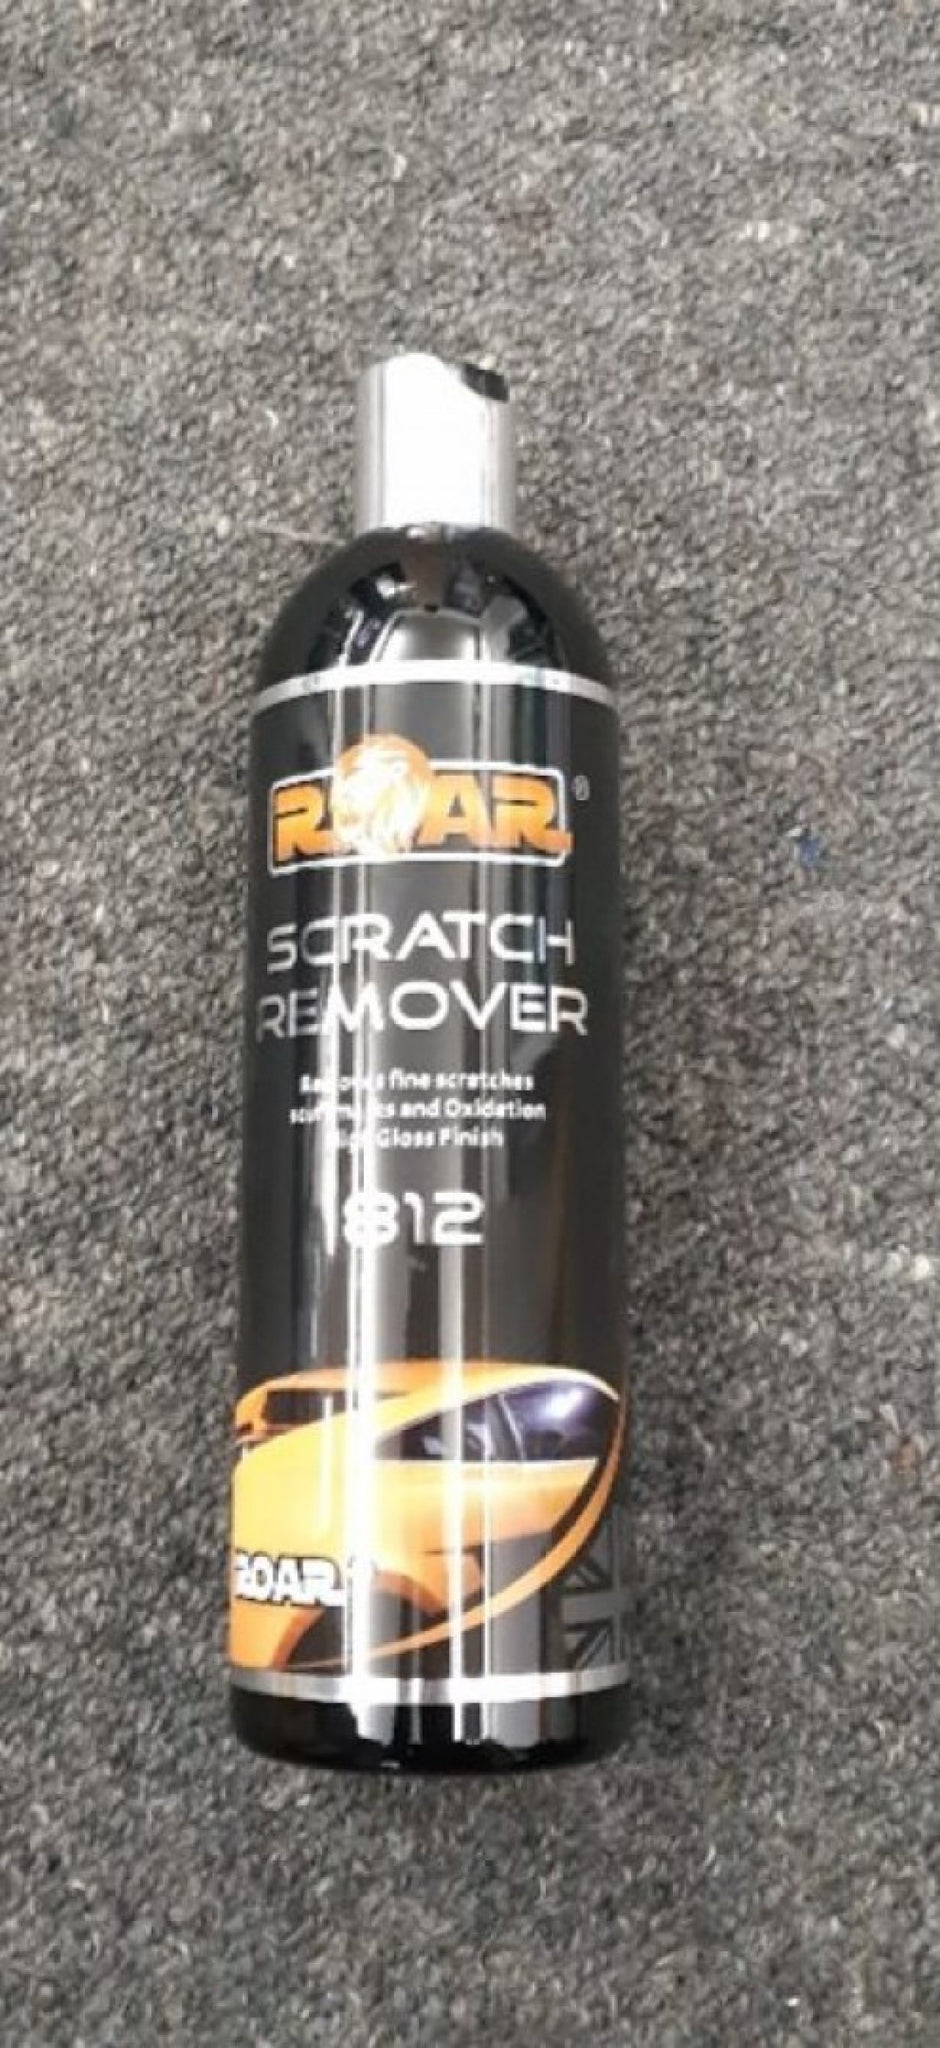 All In One Cleaner Wax by ROAR Polish Polishers made in England